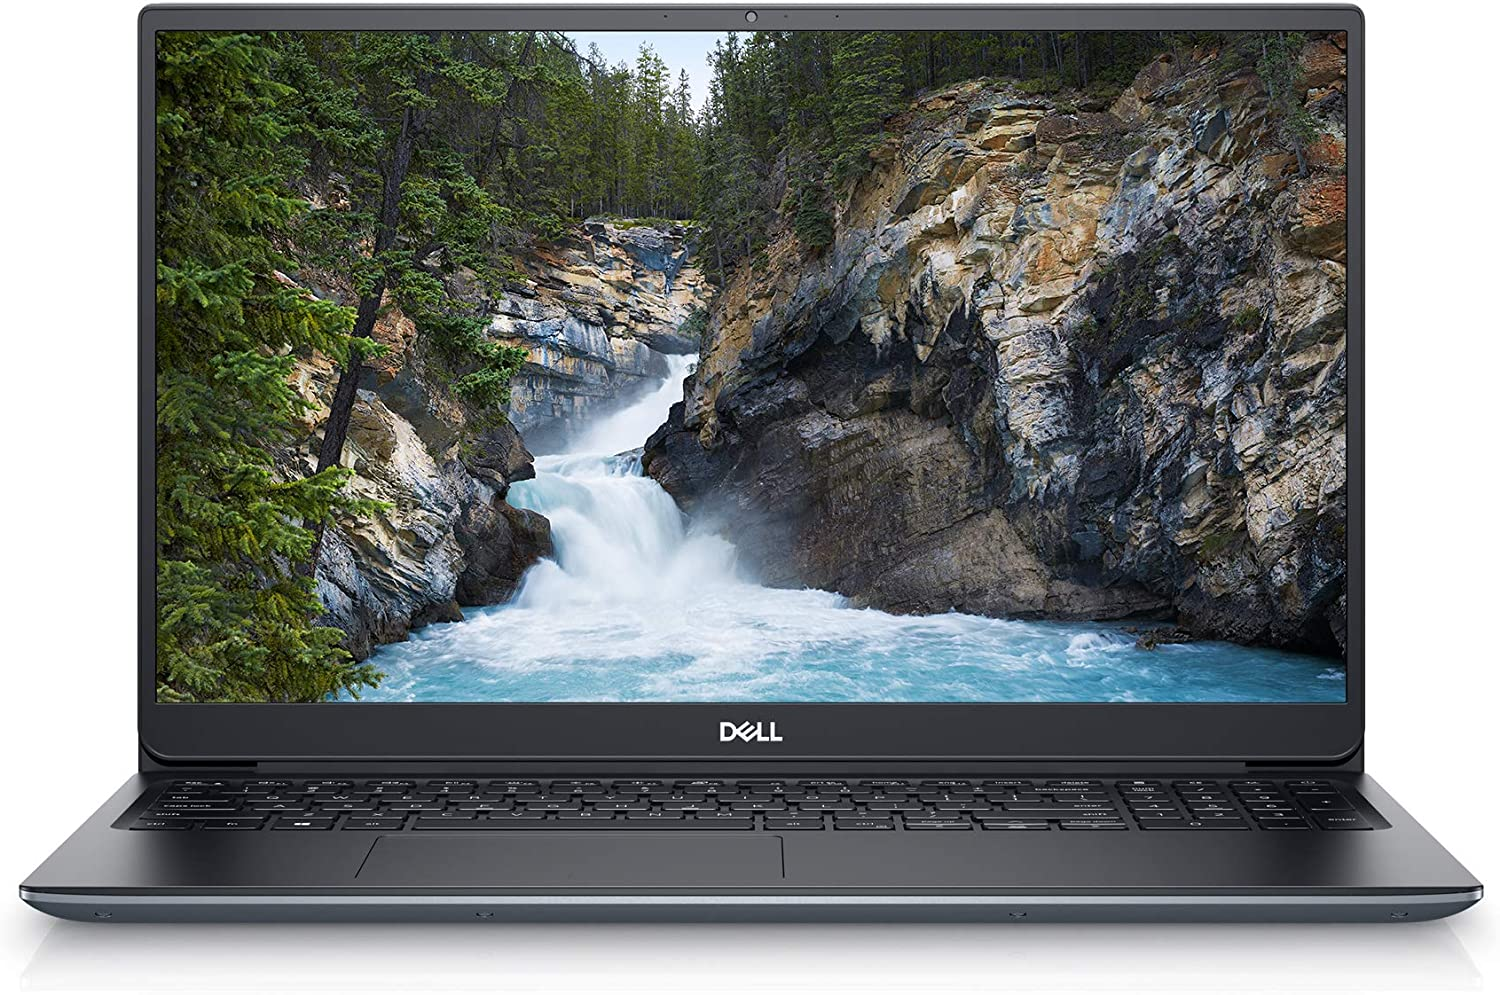 Dell Vostro 15 5590, 10th Generation Intel Core i7-10510U, 15.6-Inch FHD (1920 X 1080), 16GB DDR4 2666MHz, 512 SSD, NVIDIA GeForce MX250 2GB GDDR5, v5590-7340GRY-PUS